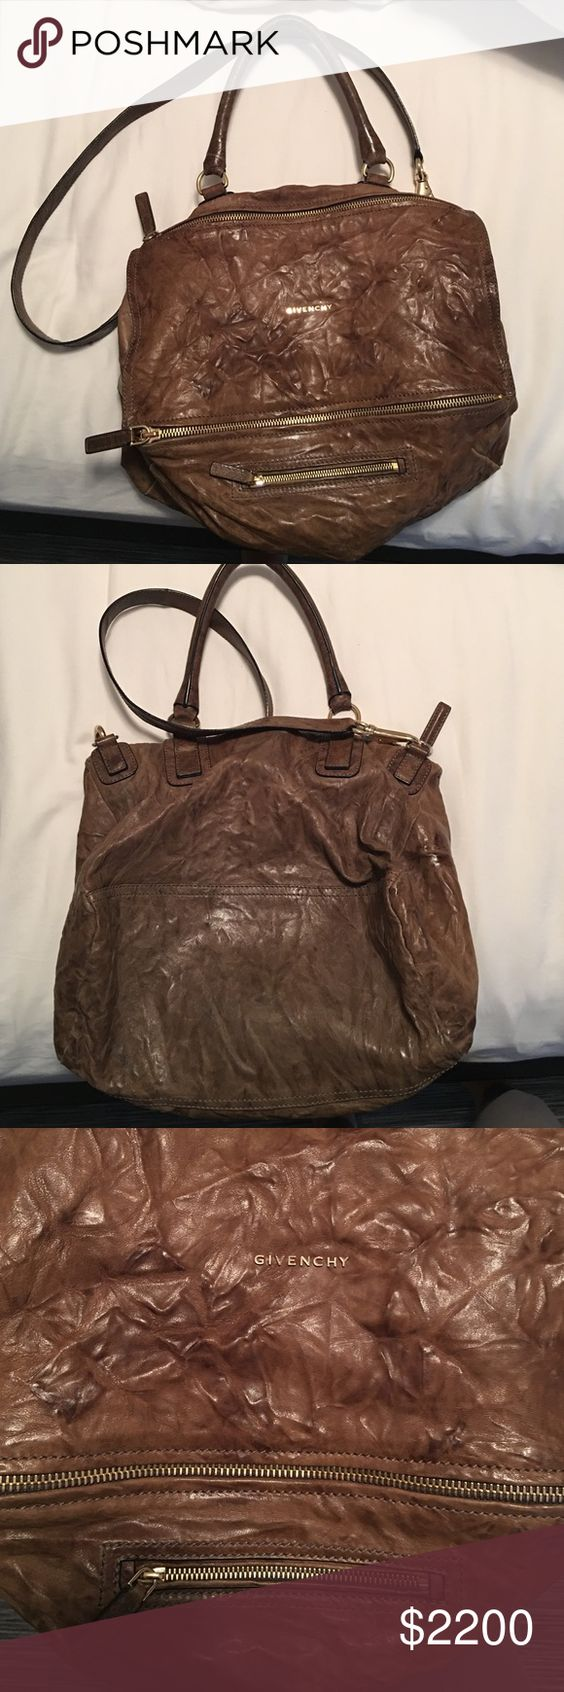 """Large size Givenchy pandora bag in """"pepe"""" leather Large size Givenchy pandora bag in """"Pepe"""" leather. Great condition, some wear on handles and leather but all around look of leather is supposed to be worn. 100% authentic. They discontinued this size so can't find anywhere! Givenchy Bags Crossbody Bags"""